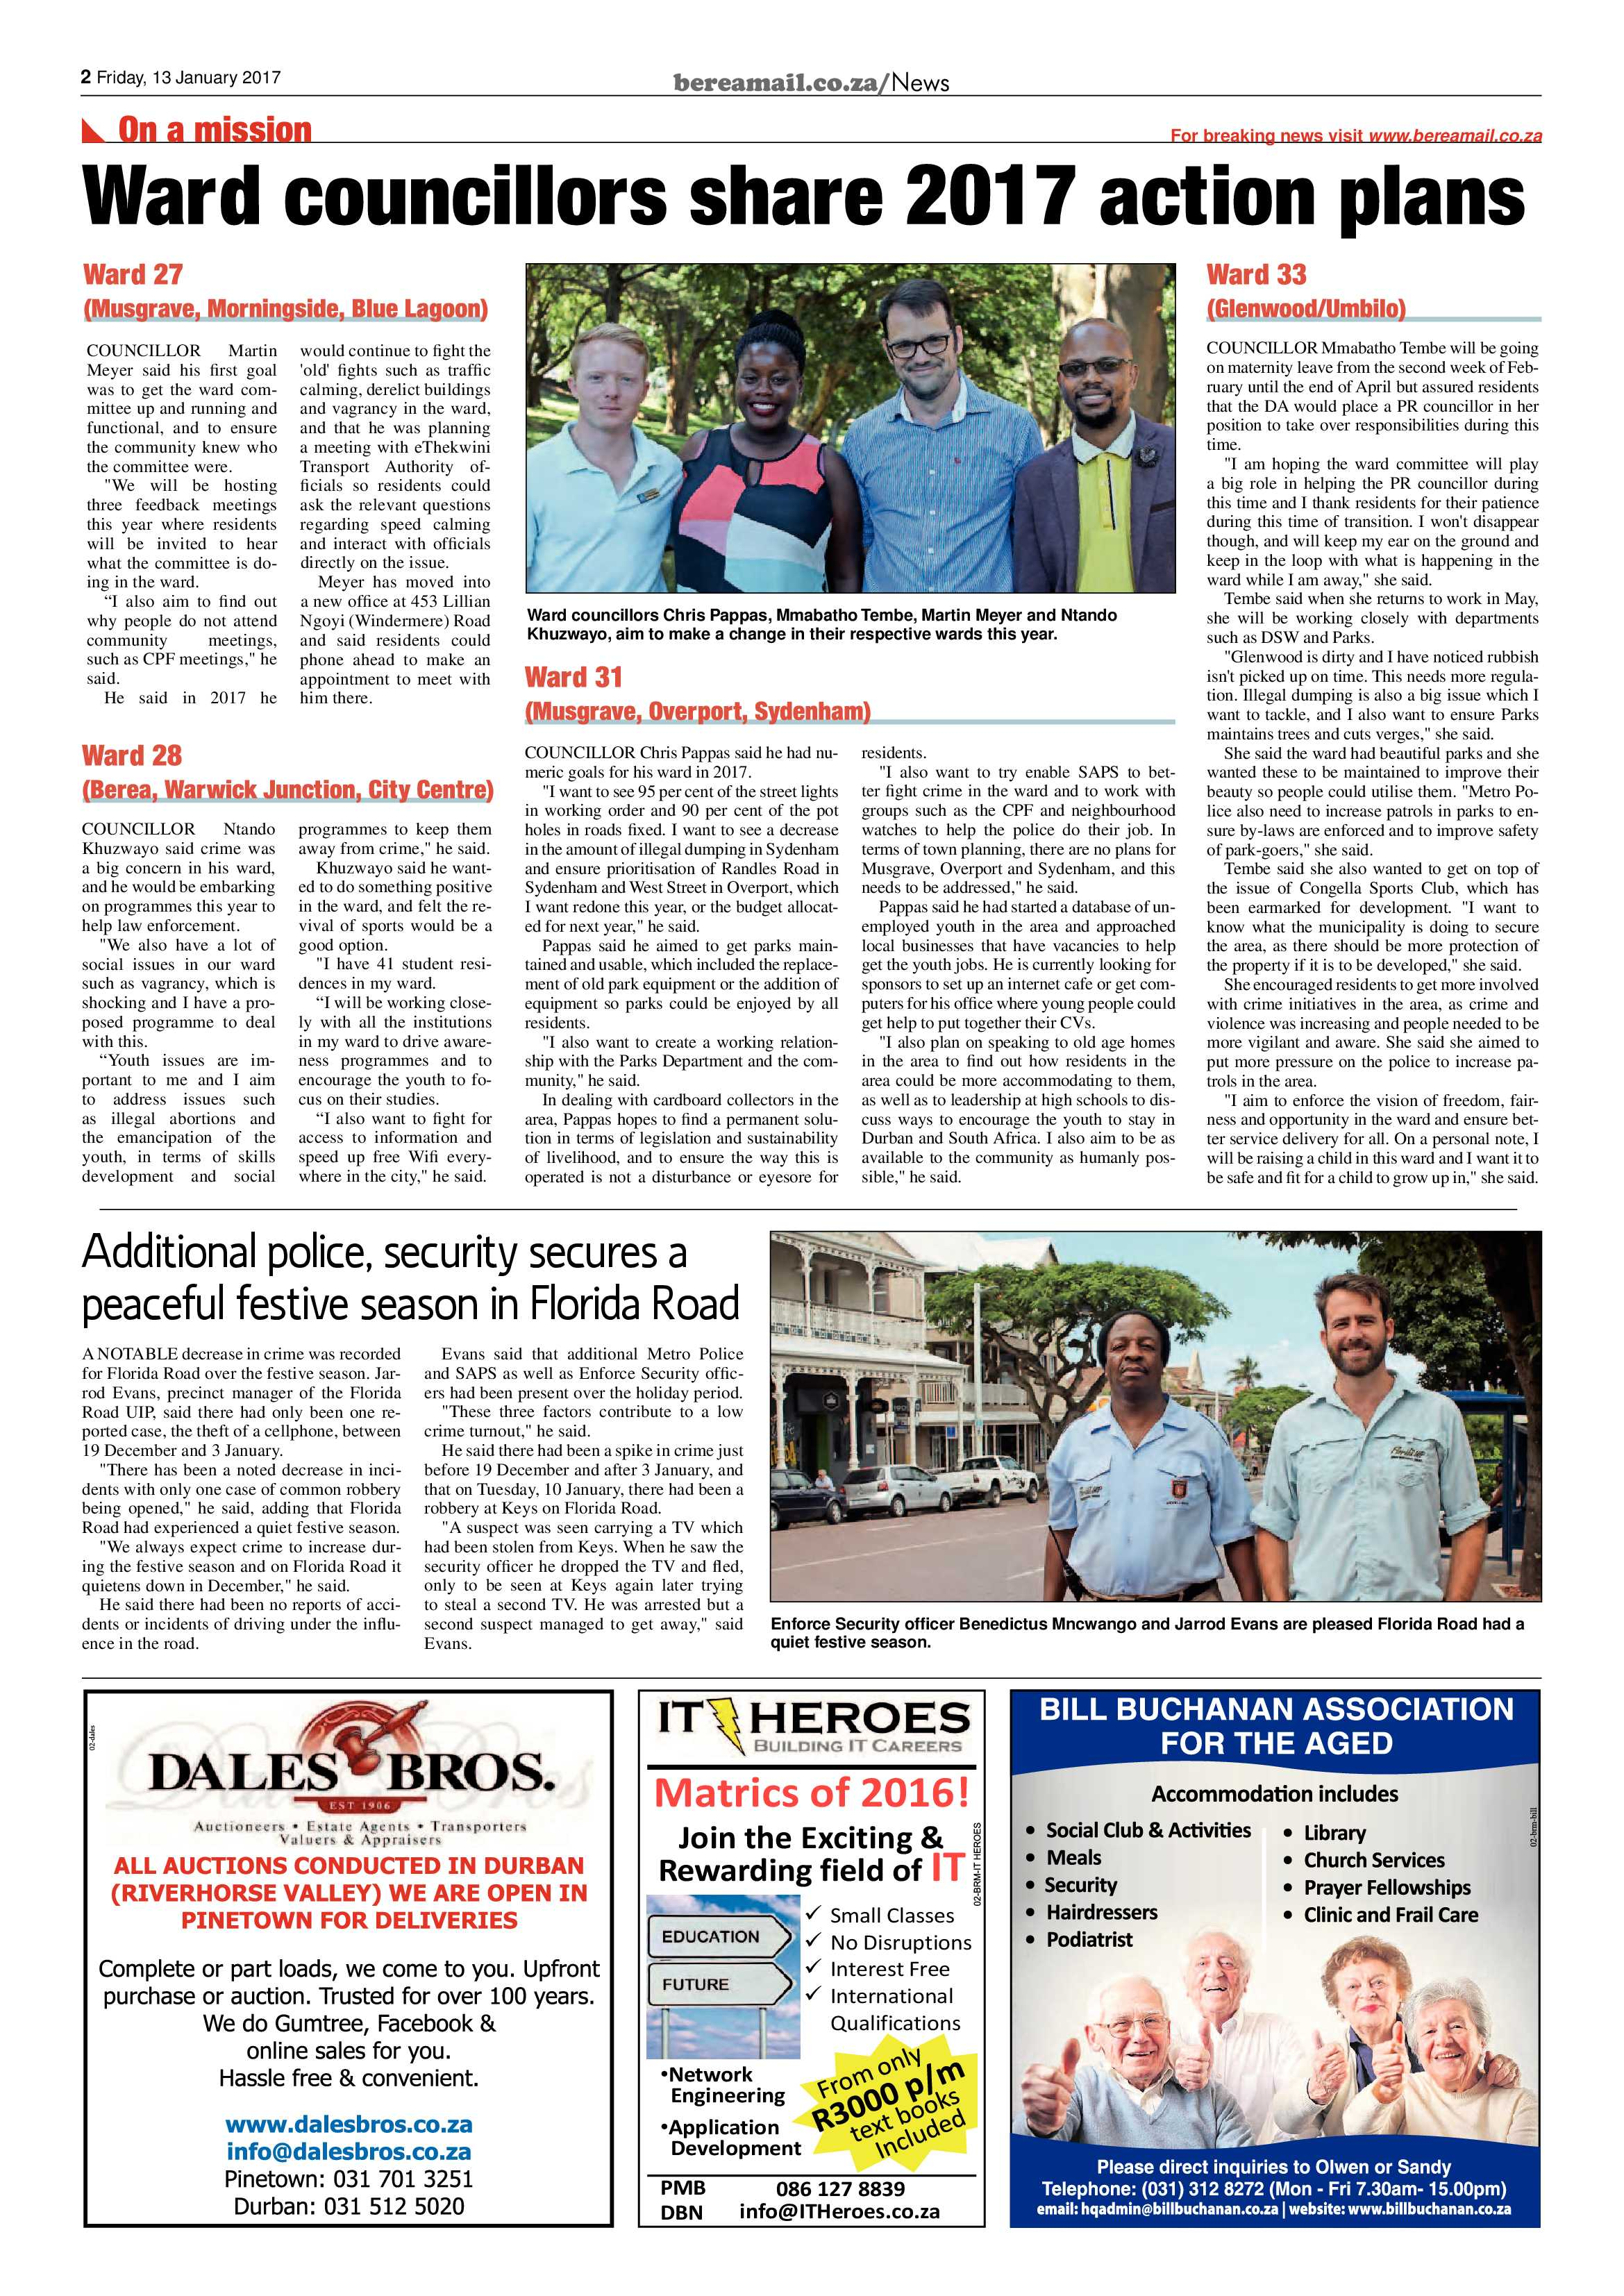 berea-mail-13-january-2017-epapers-page-2